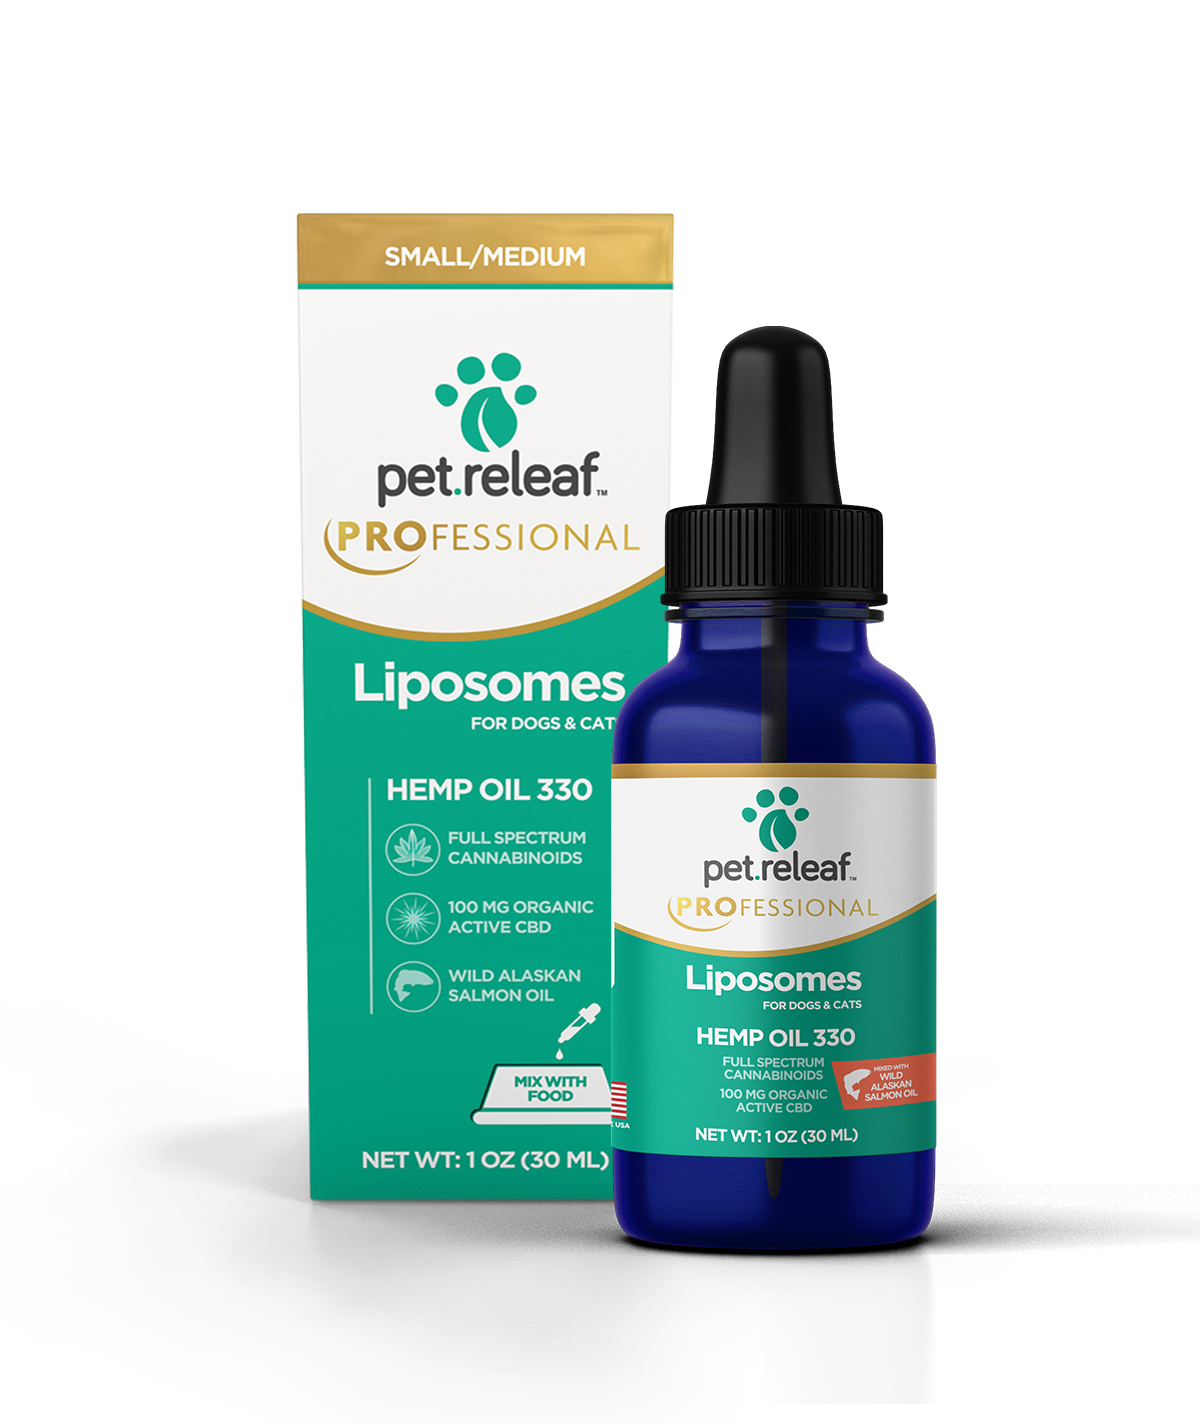 Pet Releaf Pet Releaf Hemp Oil with Liposomes CBD Supplement 330 100mg 1oz